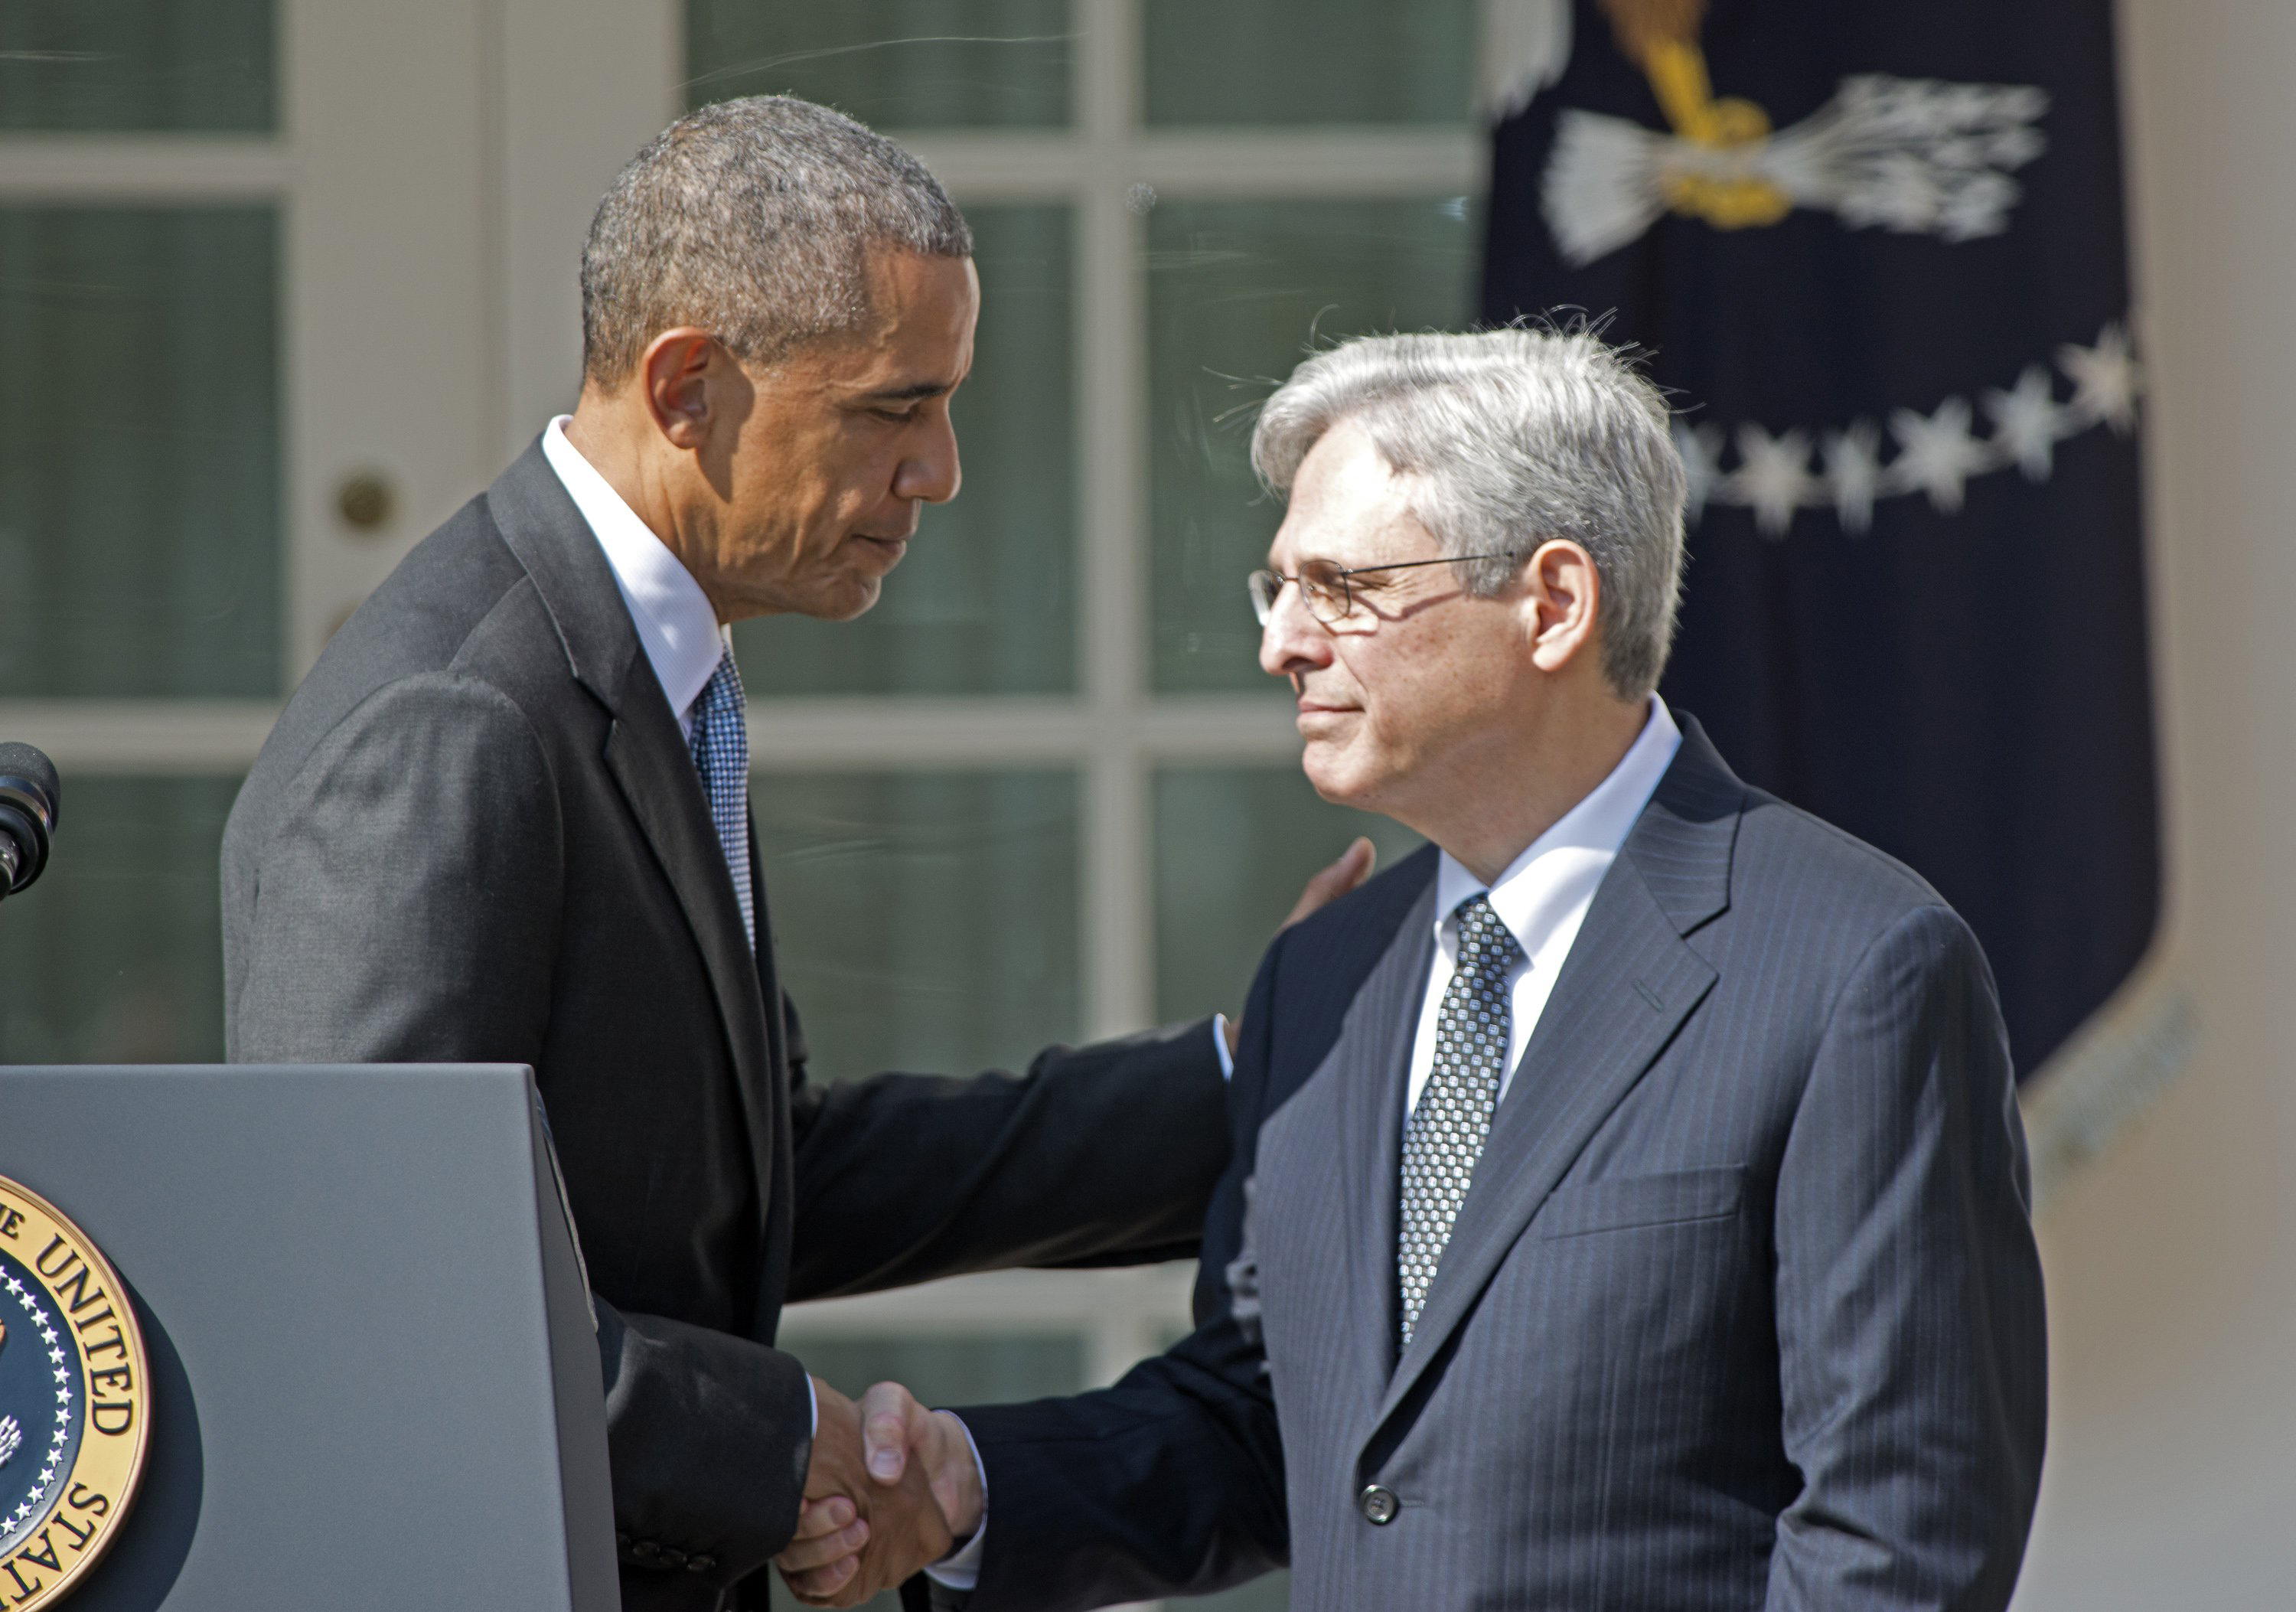 President Barack Obama, left, shakes hands with Judge Merrick Garland, chief justice for the U.S. Court of Appeals for the District of Columbia Circuit, right, after announcing him as his nominee for the Supreme Court in the Rose Garden of the White House on Wednesday, March 16, 2016. (Ron Sachs/CNP/Sipa USA/TNS)